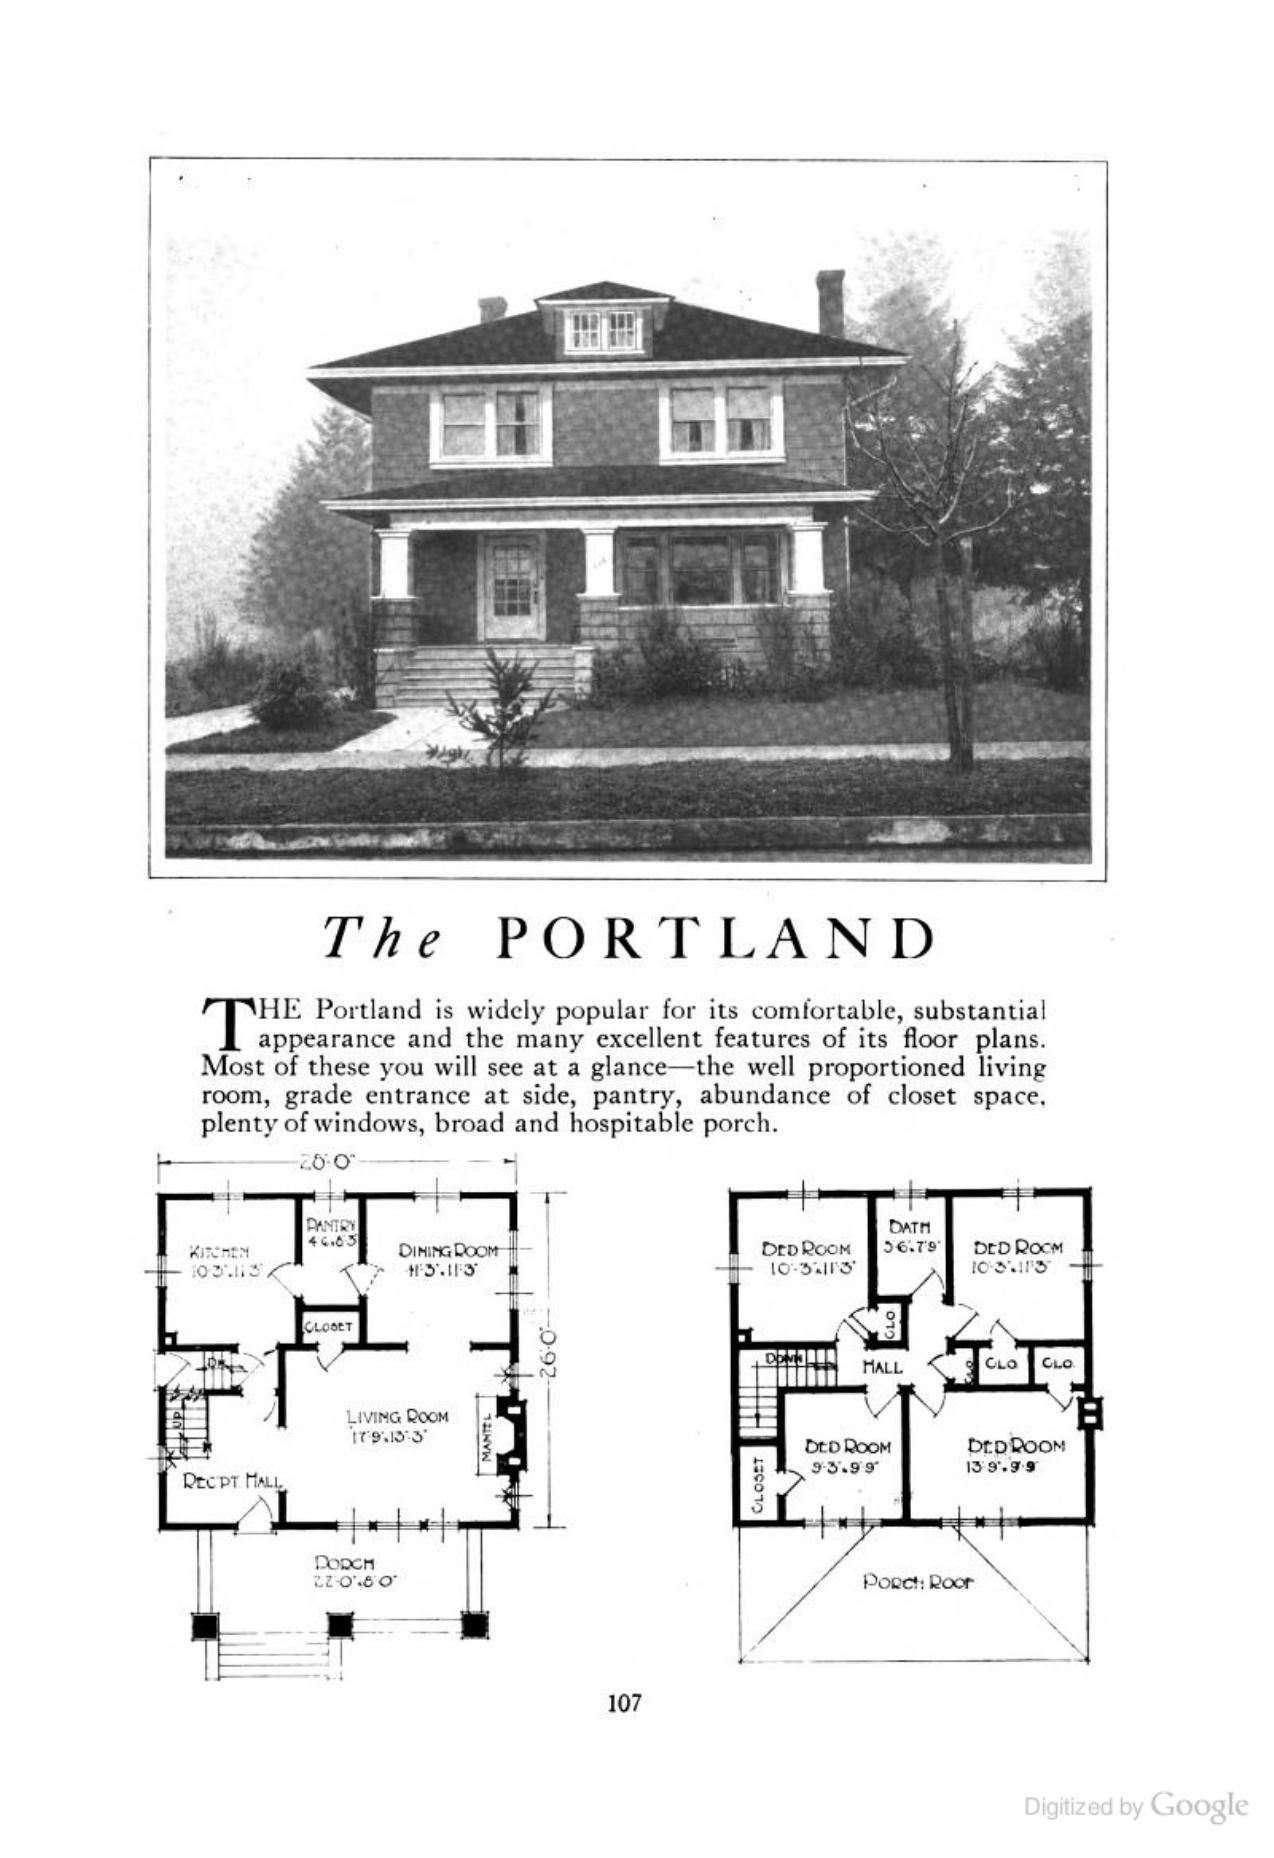 The Portland An American Foursquare Kit House House Plan Homes